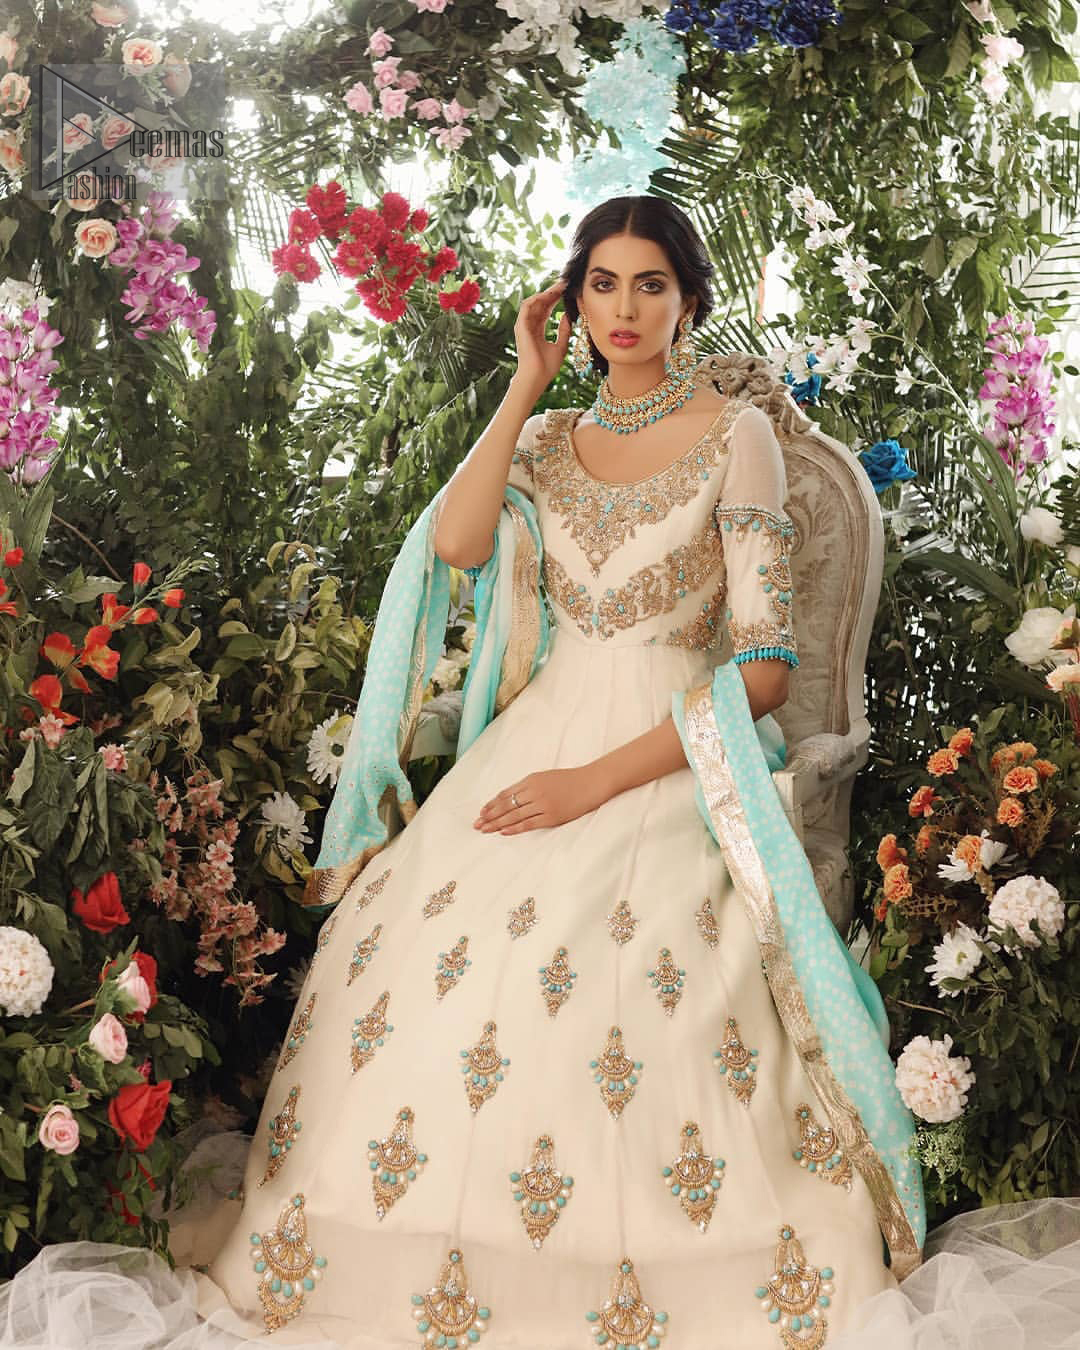 This outfit should be the next addition to your wardrobe. An example of beauty and elegance. Look breathtakingly stylish in this embroidered regalia furnished with intricate embroidered neckline which is embellished with antique shaded zardozi work and ferozi stones. Furthermore, this multiple panel frock is adorned with different sized motifs scattered all over the frock. It is coordinated with ivory churidar pajama. Finished the look with self printed chiffon dupatta having four sided applique on it.